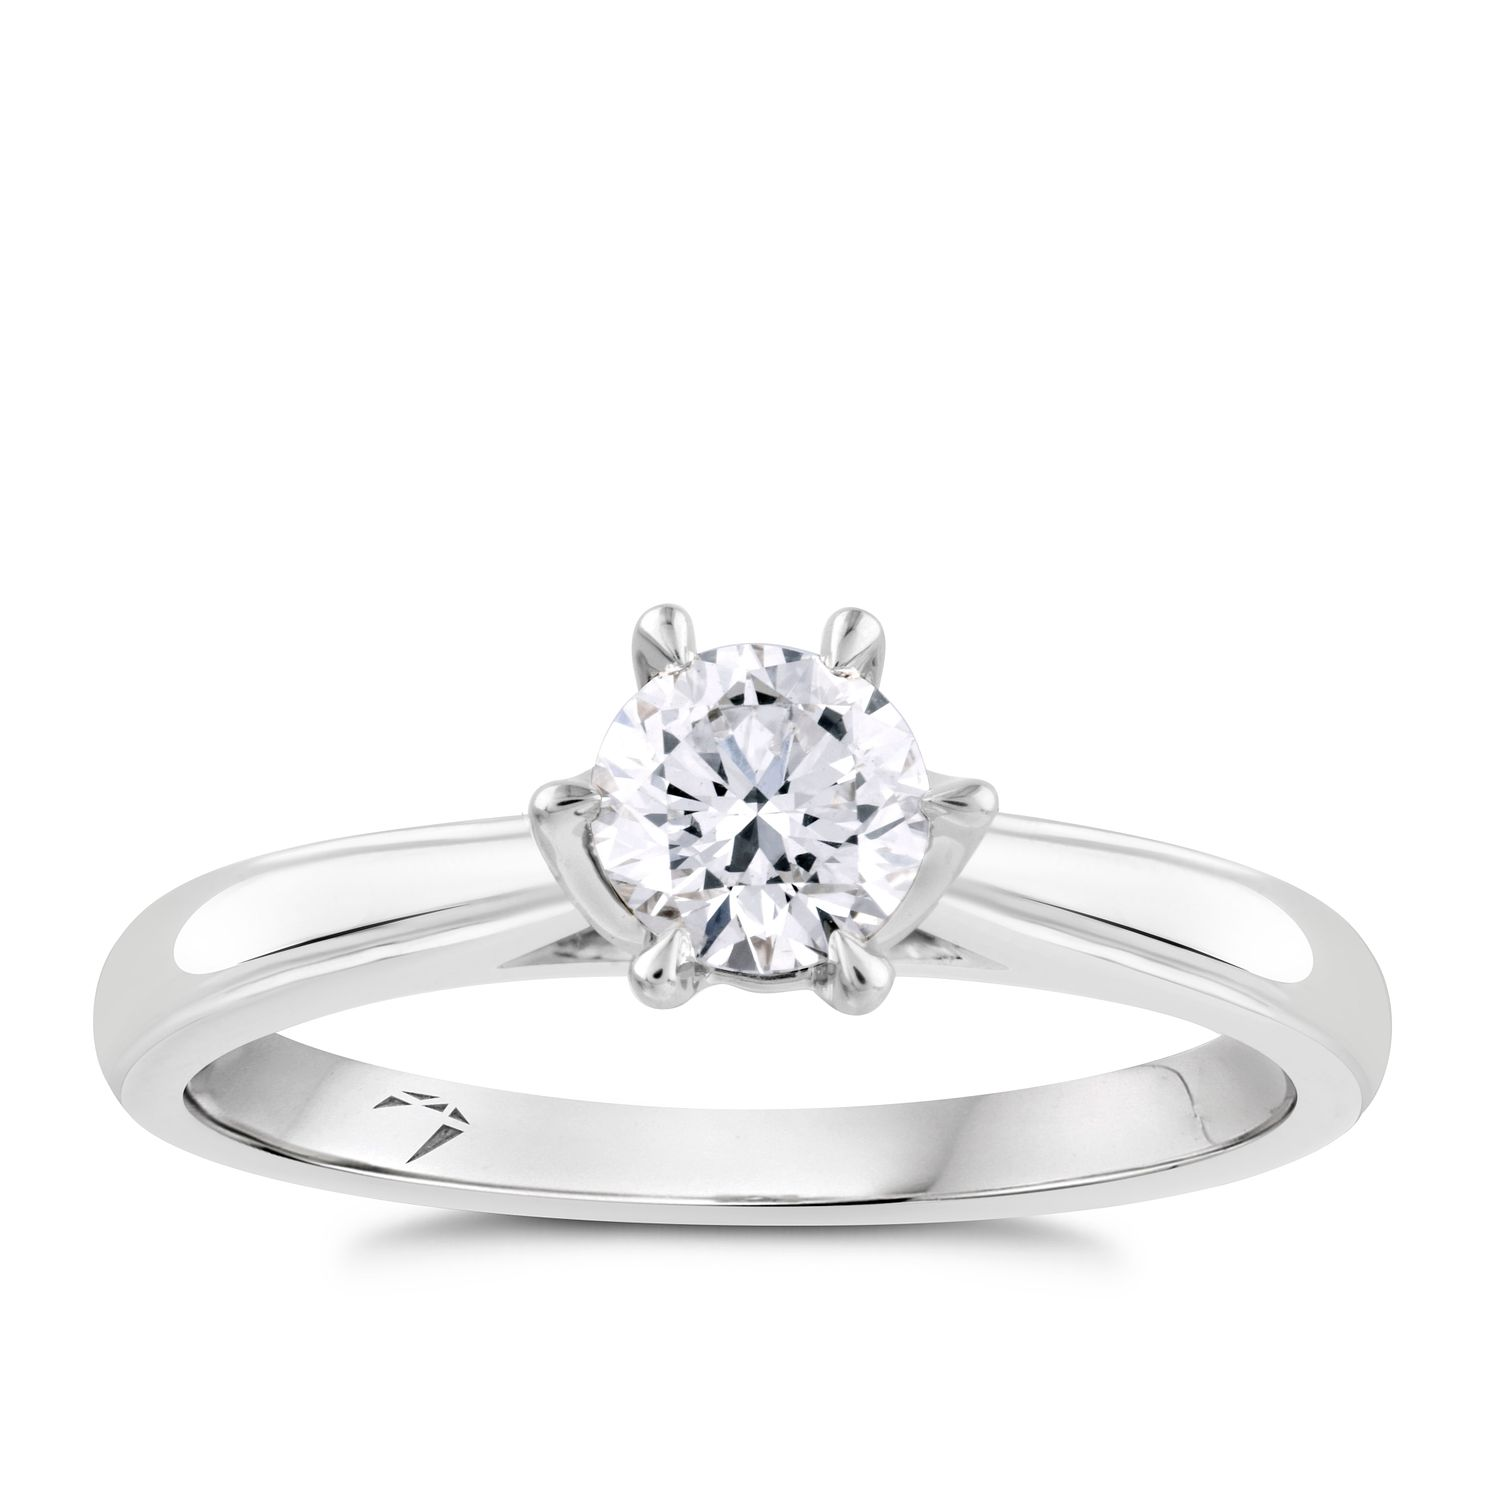 Arctic Light Platinum 1/2ct Diamond Solitaire Ring - Product number 4245156